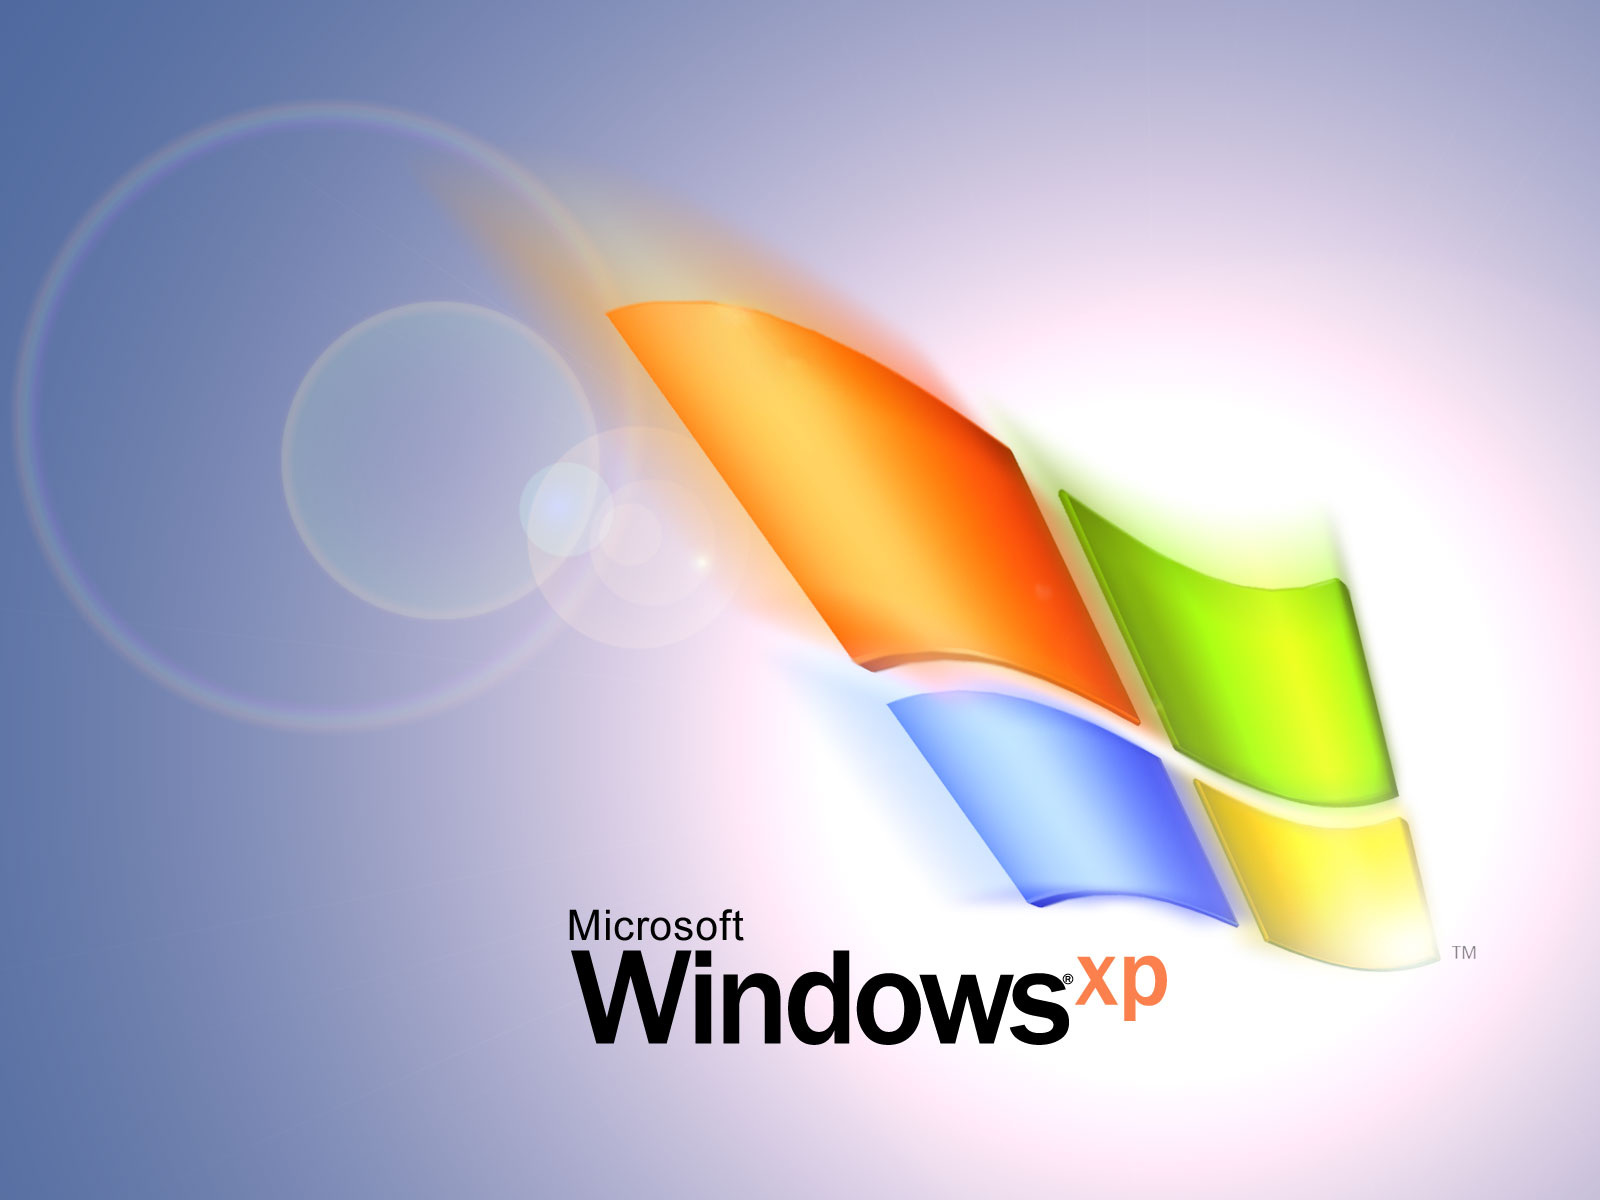 Wallpaper Theme Windows XP windows